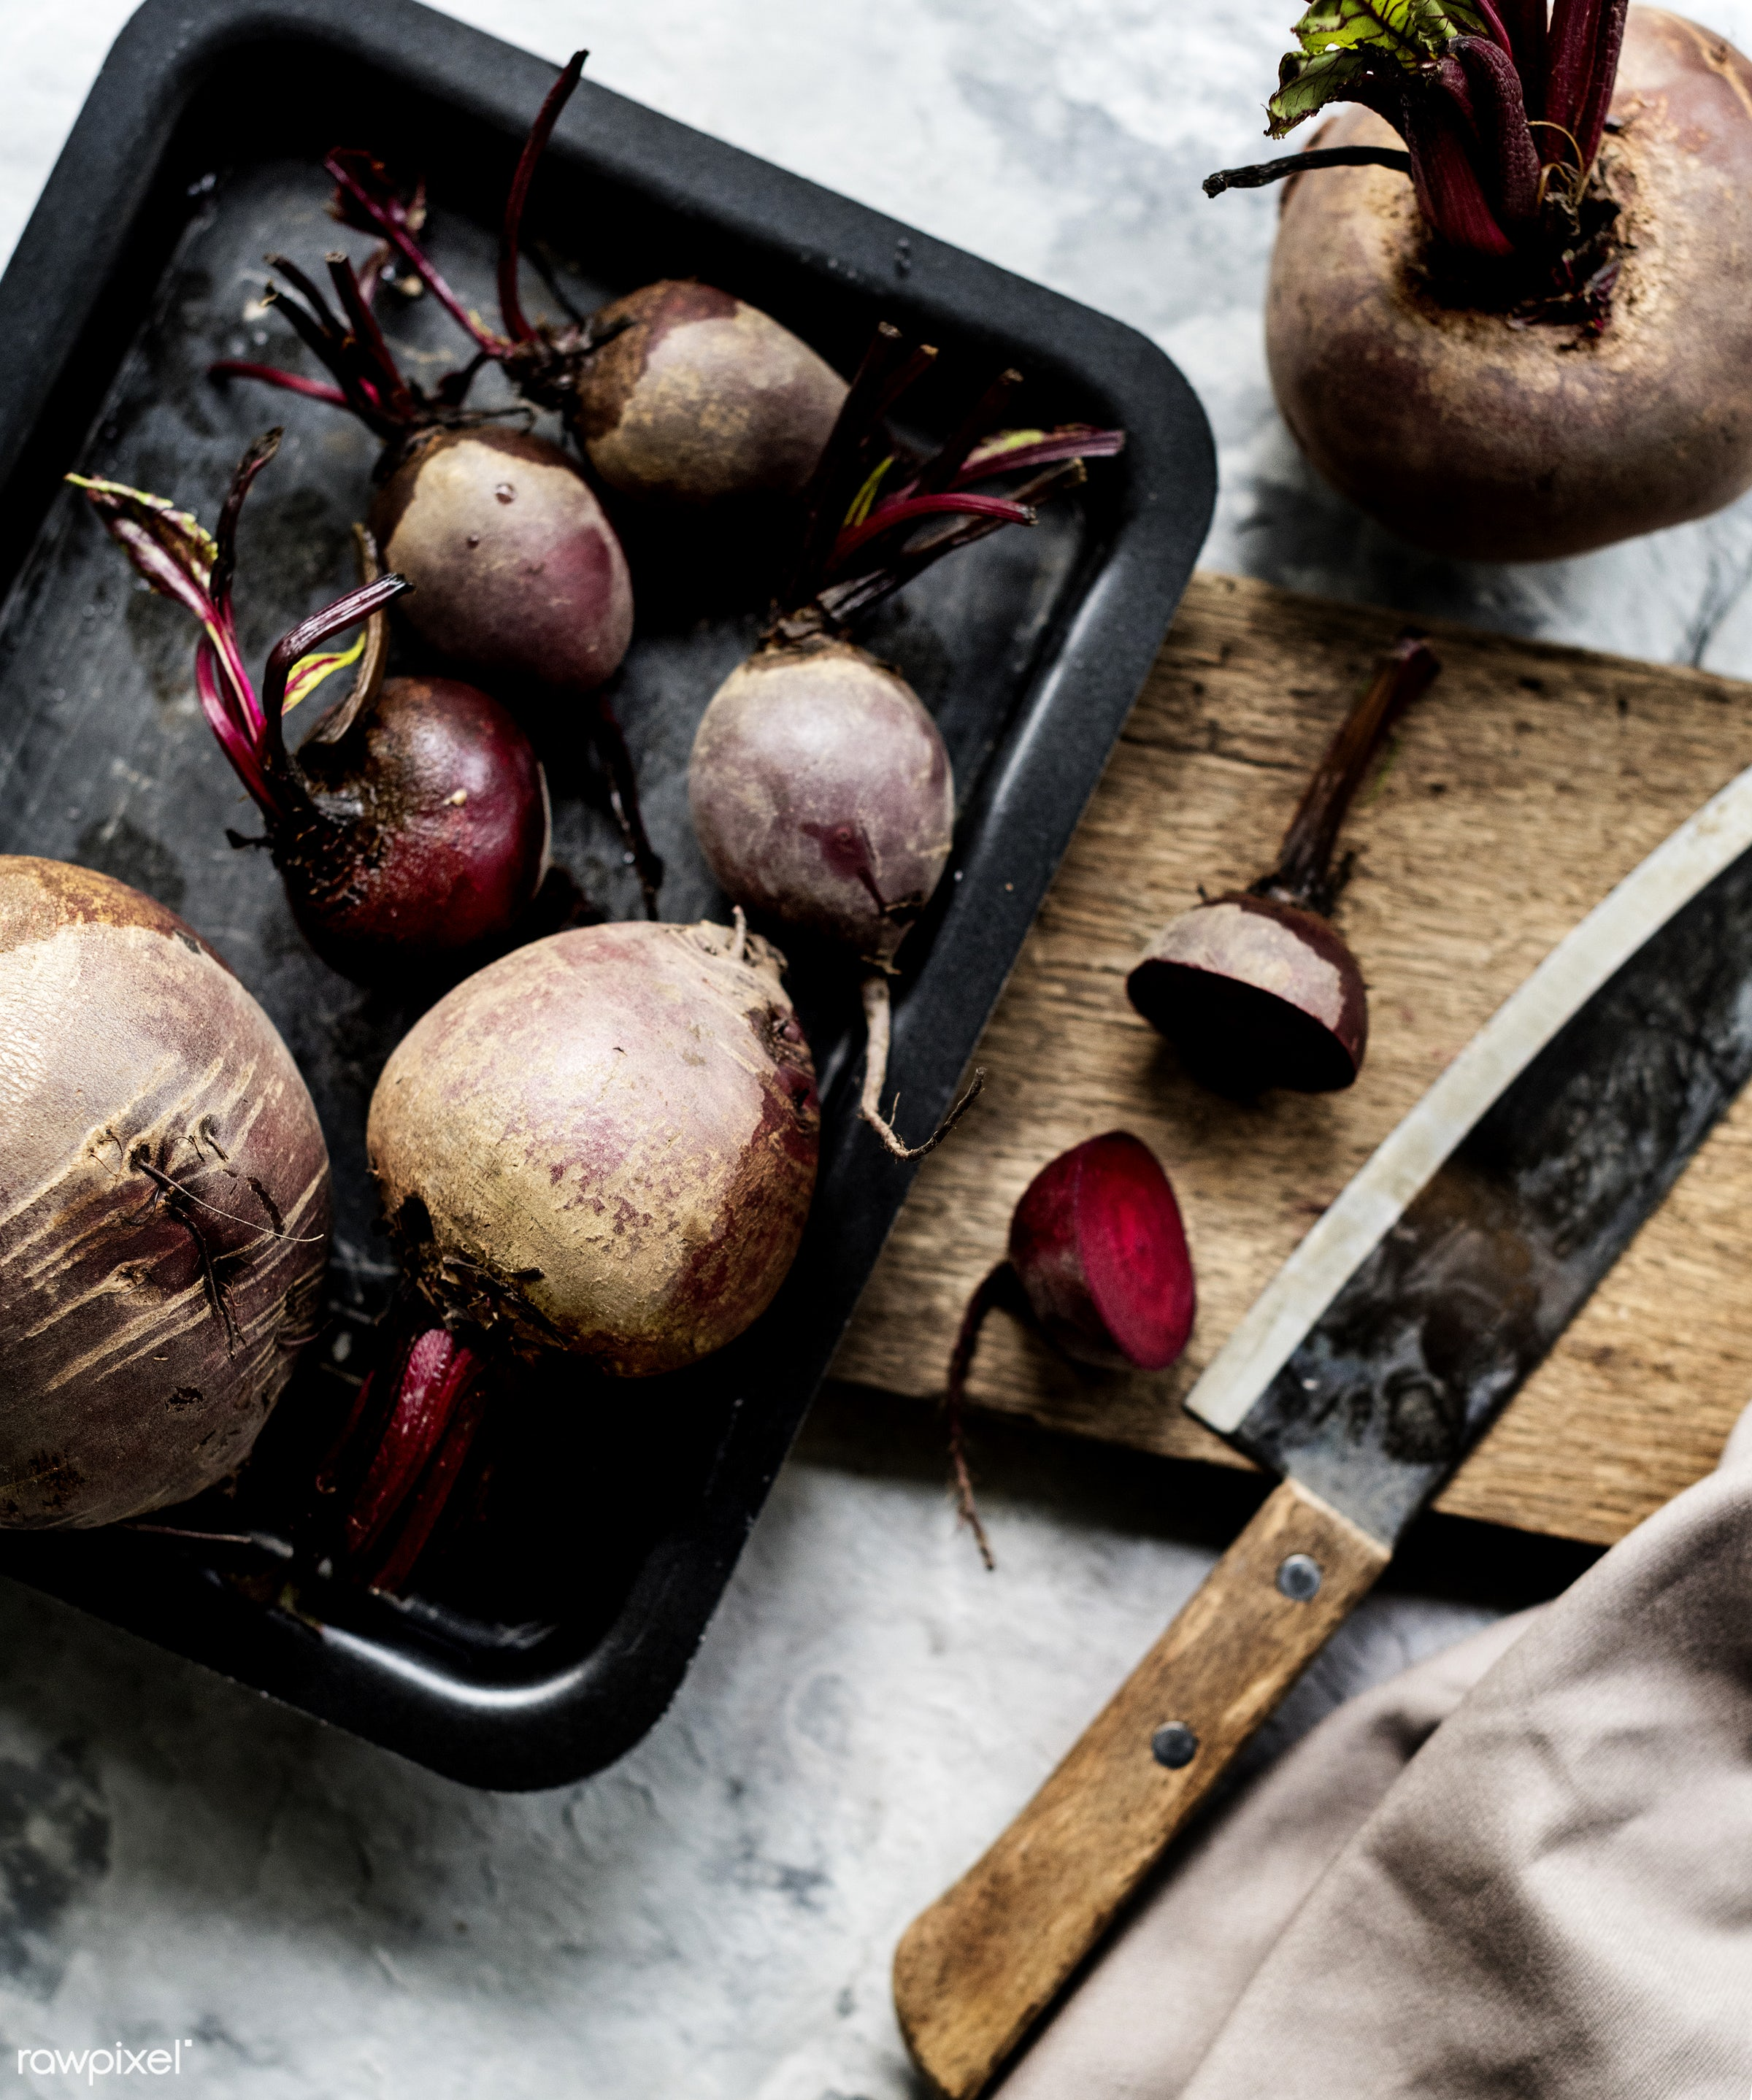 raw, gastronomy, beet roots, type, kind, fresh, cooking, vegetarian, ingredient, gourmet, knife, nourishment, cutting board...